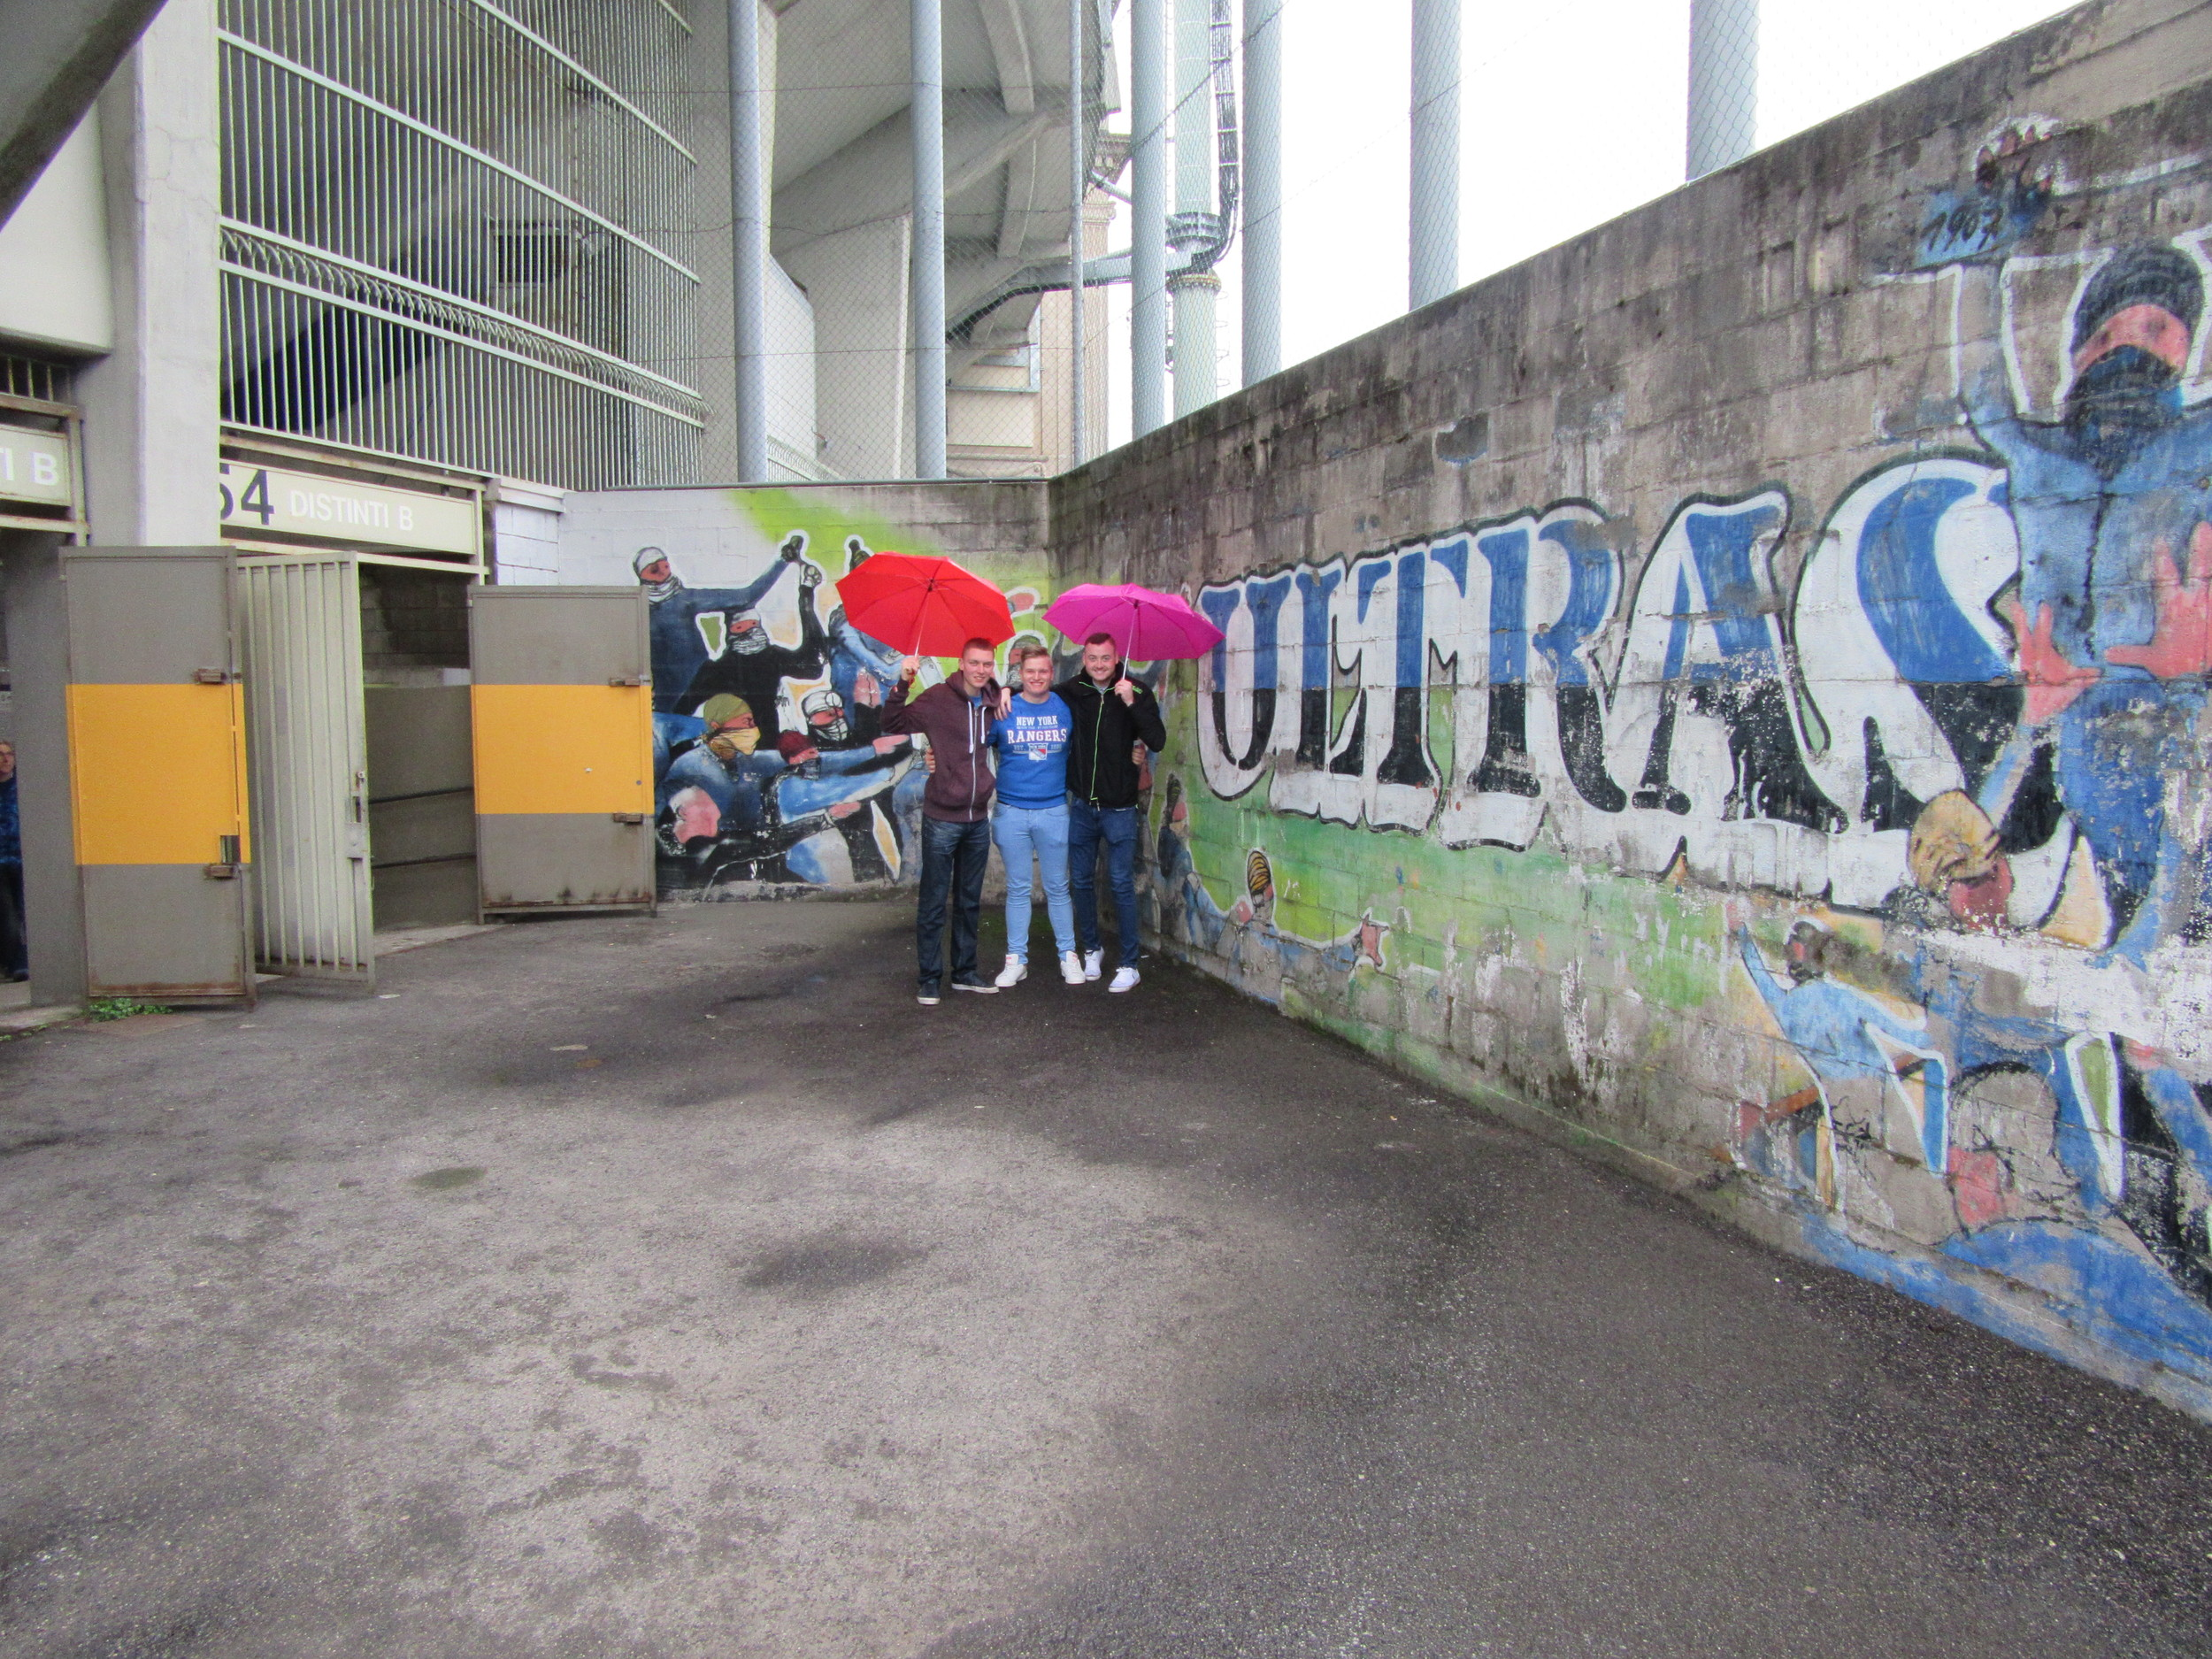 Standing next to the Atalanta 'ULTRAS' mural. You may notice the umbrellas we purchased before the game, which prevented us going from zero to drowned rats in five minutes.